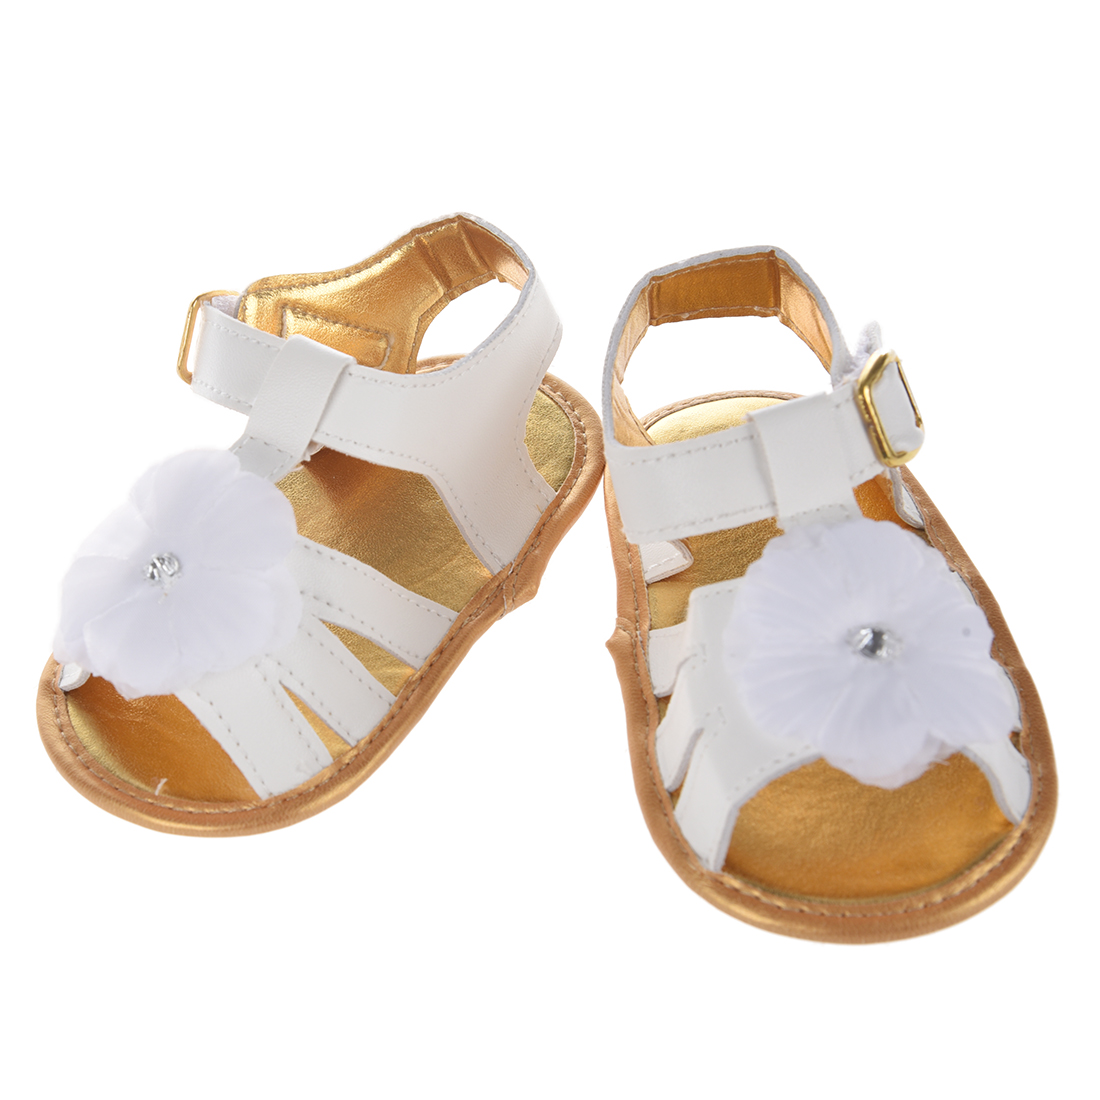 KEOL Best Sale New Baby Girl Floral Summer Sandals Crib Soft Sole Non-slip Princess Shoe ...